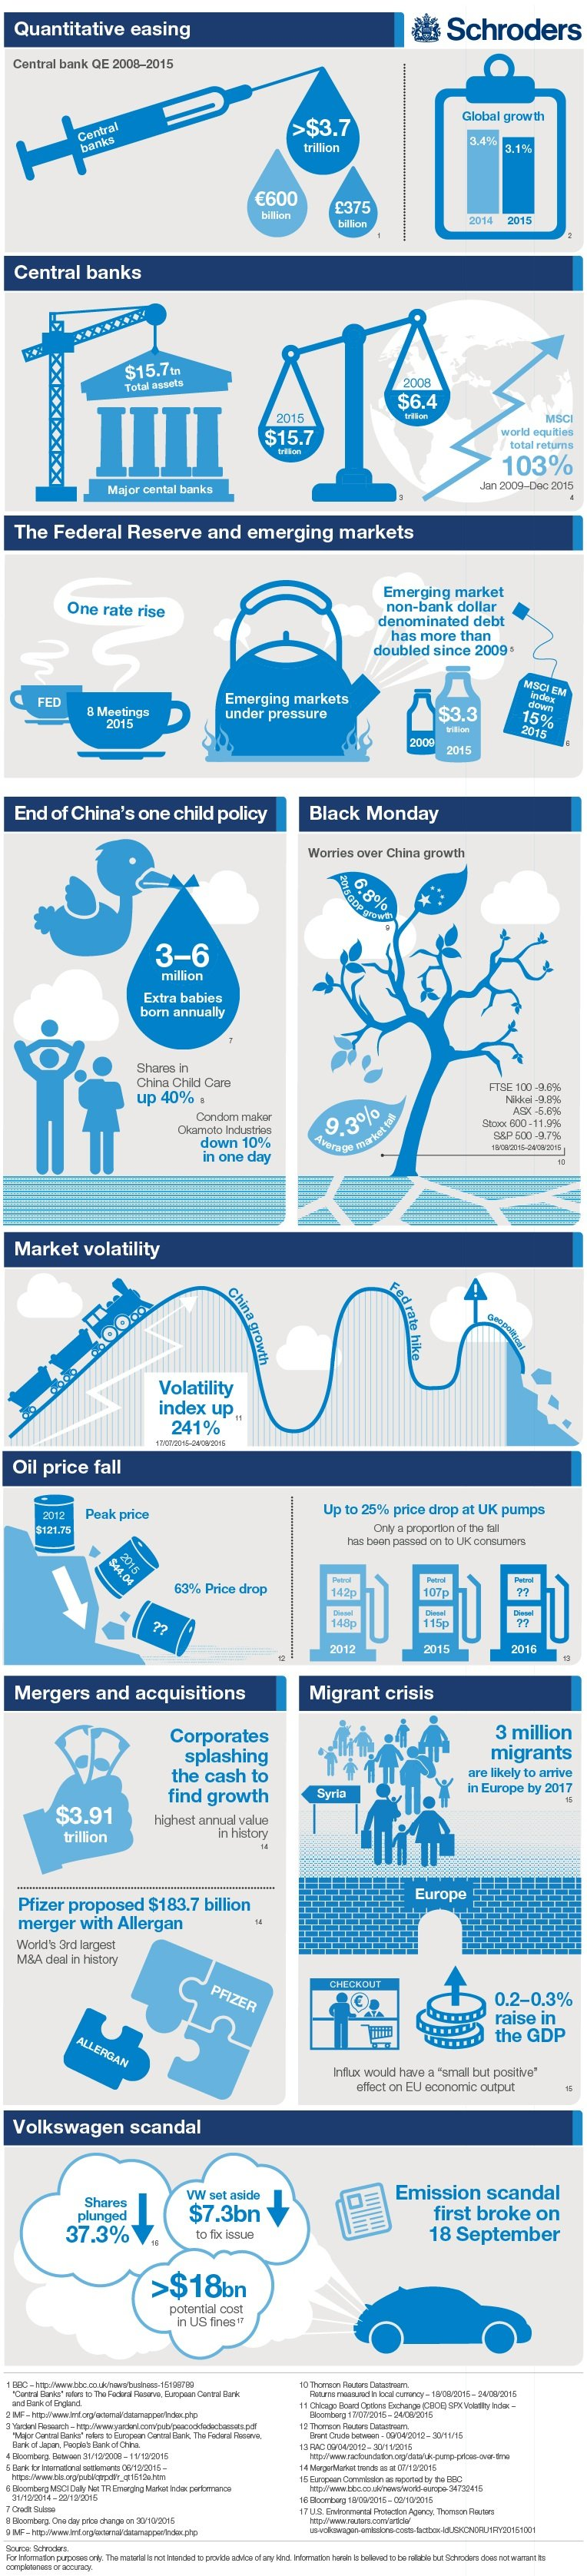 schroders 2015 financial year in numbers financial